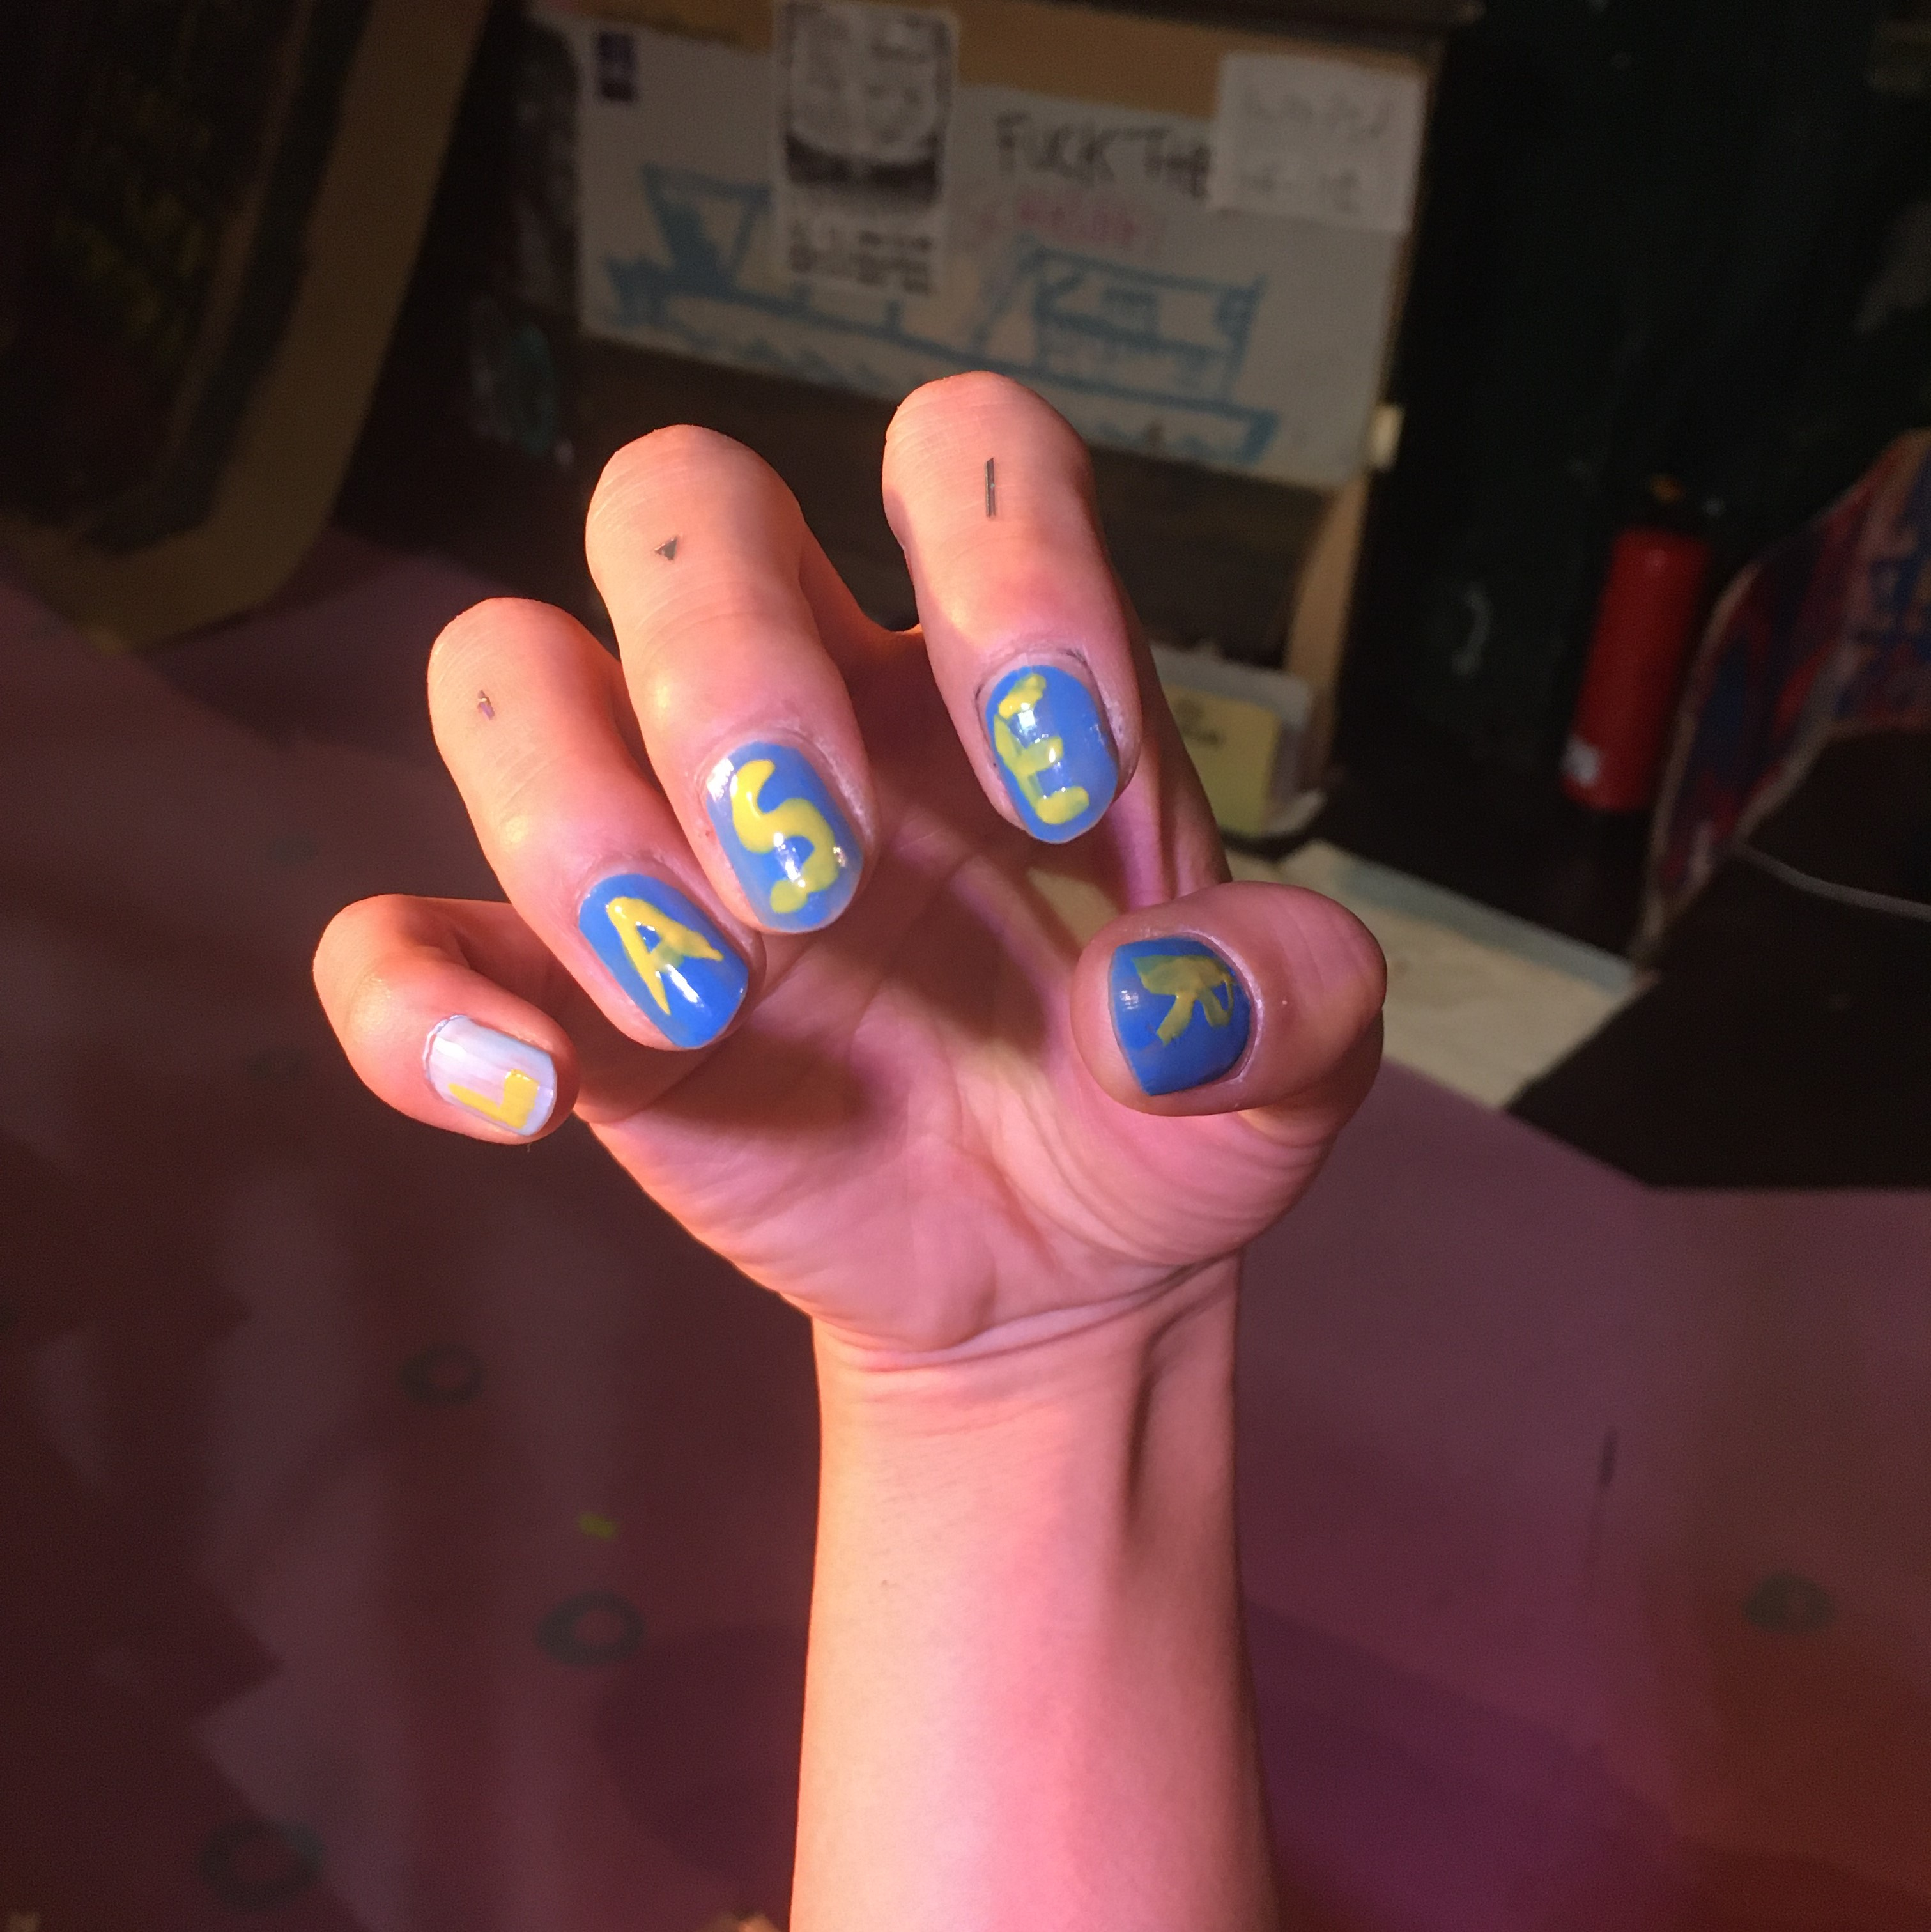 My nails written as LASER